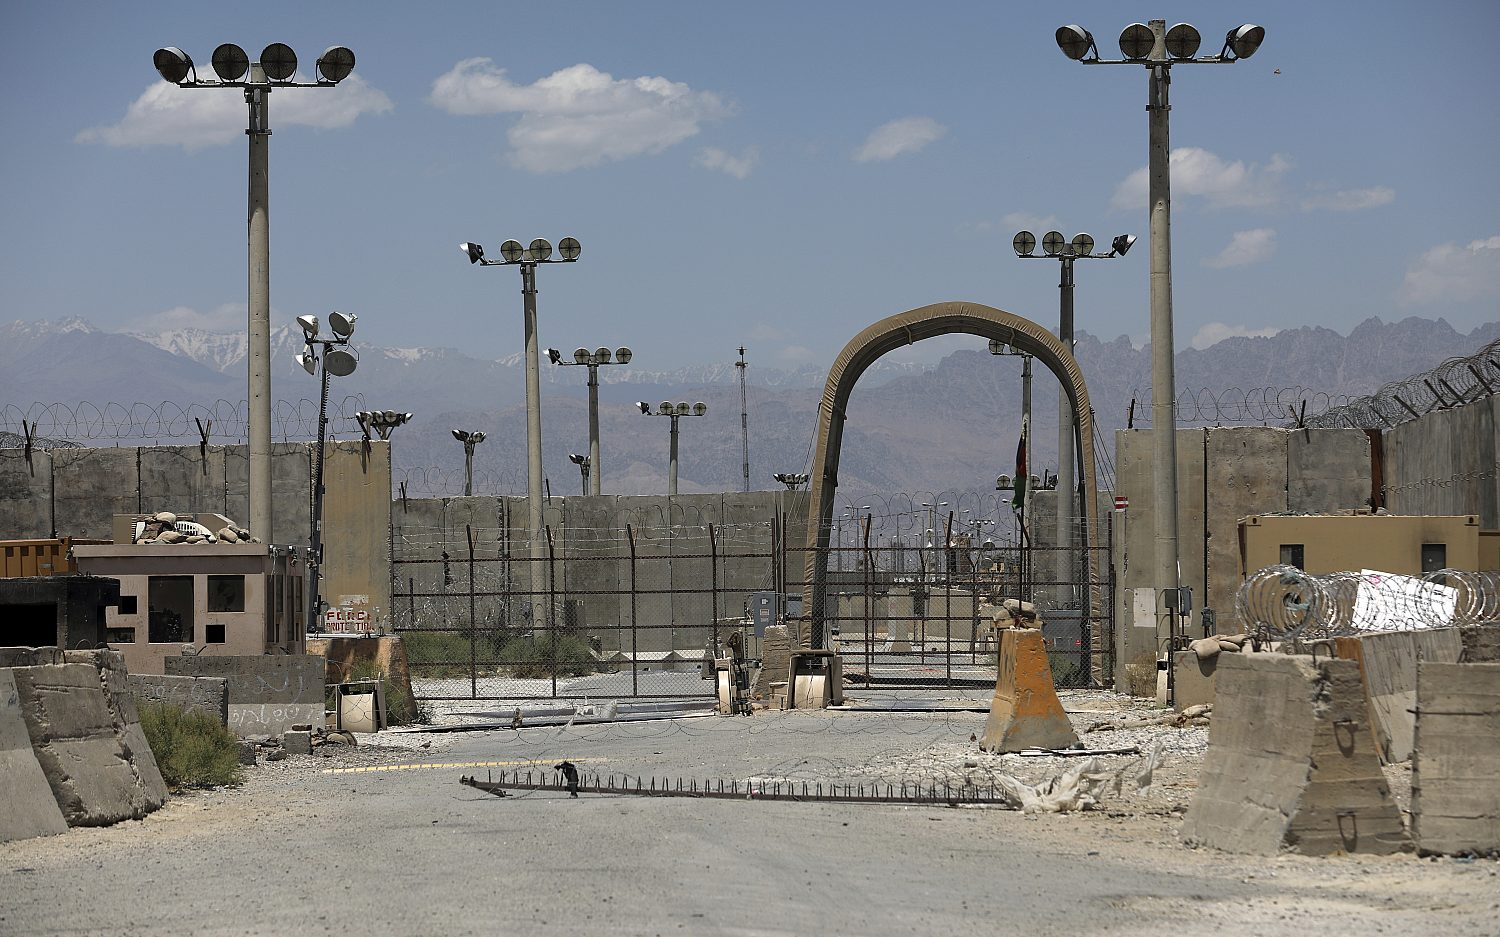 U.S. exits Afghanistan's Bagram Airfield after two decades